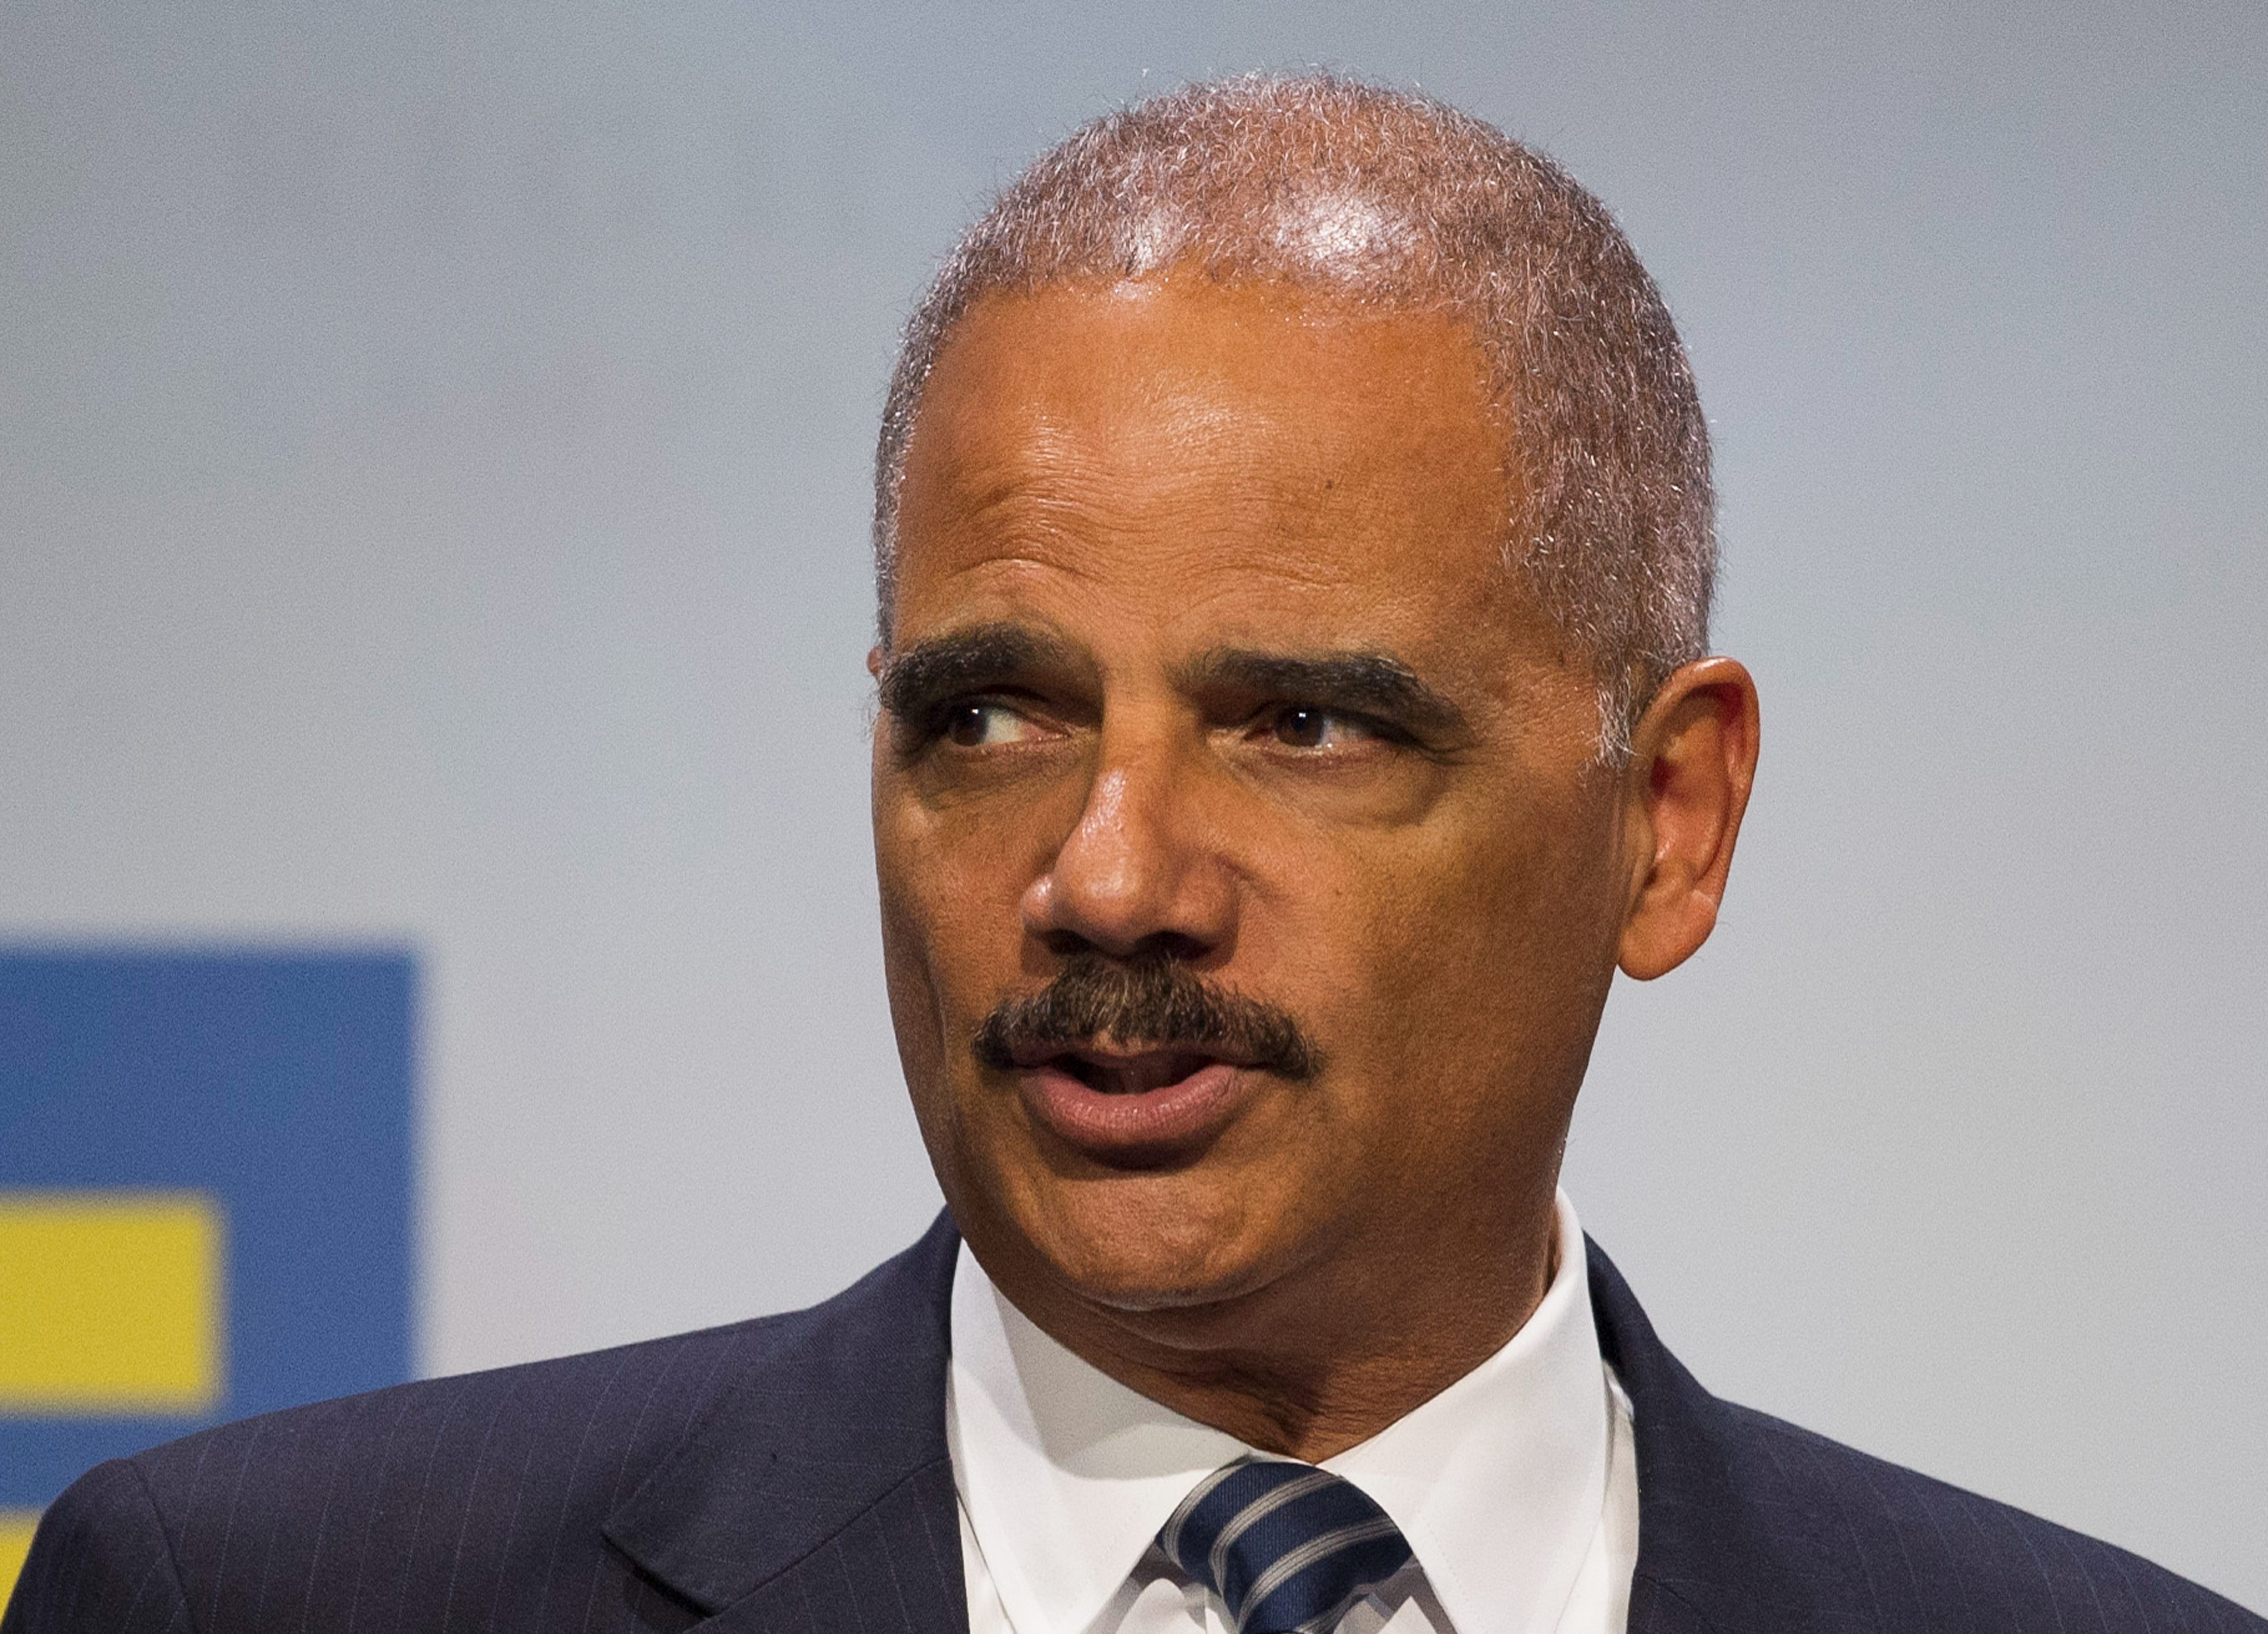 Former Obama AG Holder: No 'question' Trump can be prosecuted, Dems should weigh impeachment